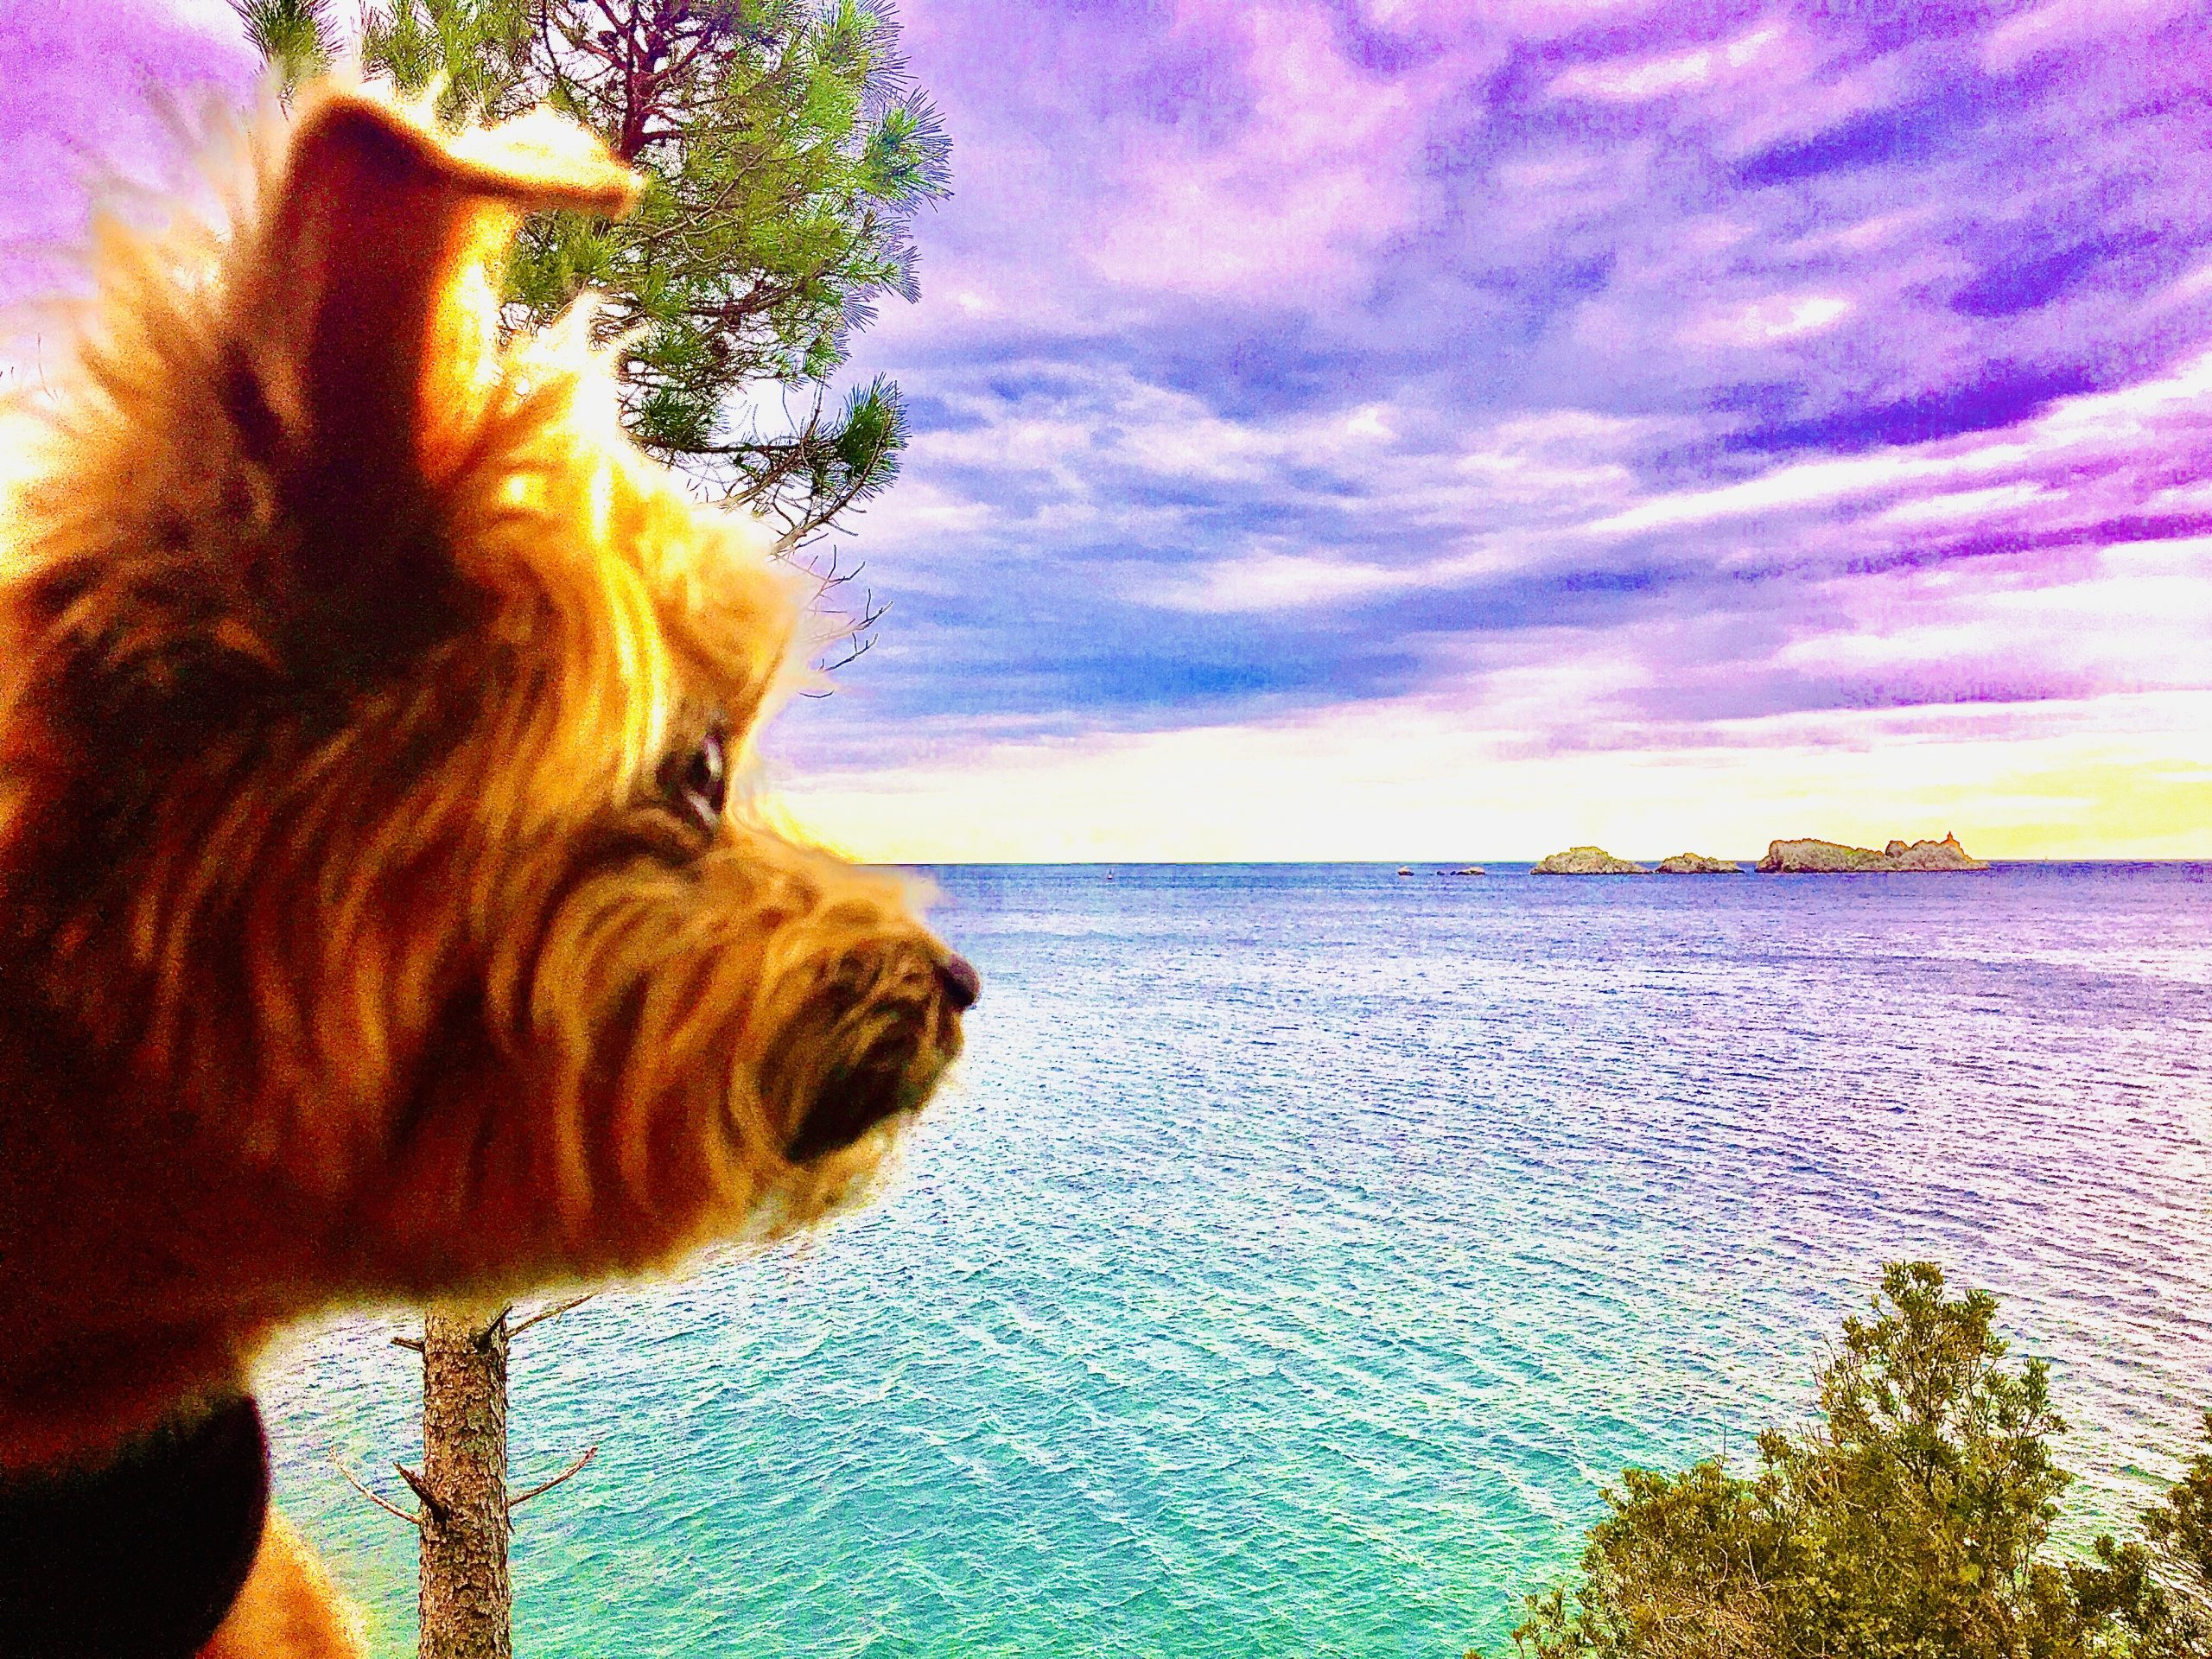 Dog Travel to Dubrovnik, Croatia: Roger Wellington conquers the Pearl of the Adriatic